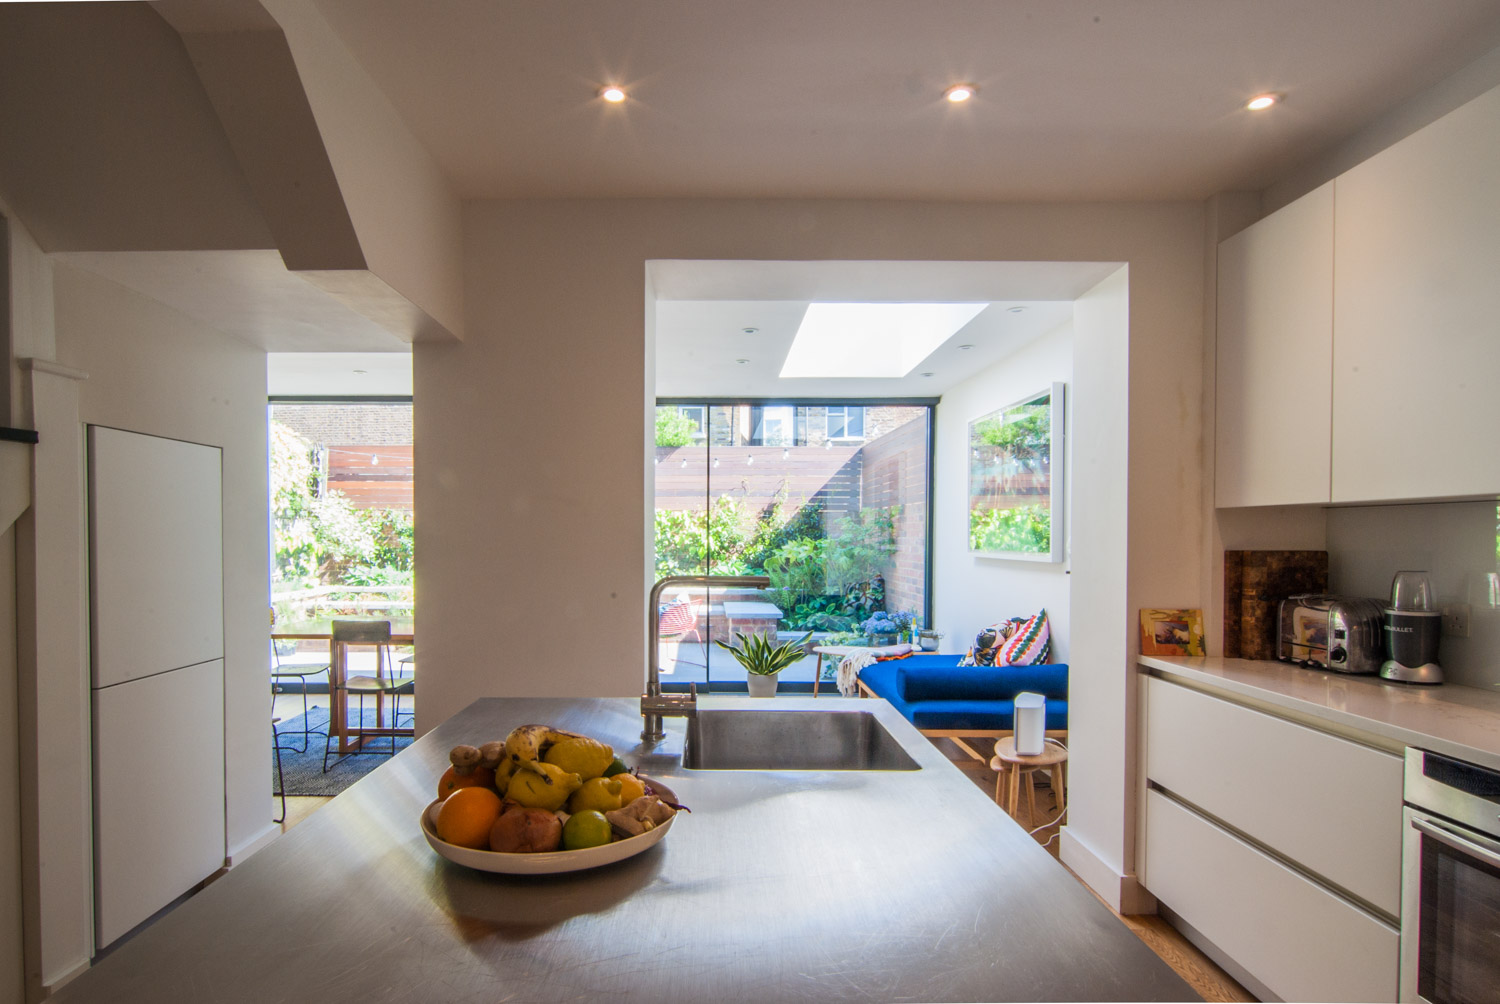 Stainless steel worktop on kitchen island are the centre piece of the ground floor extension.